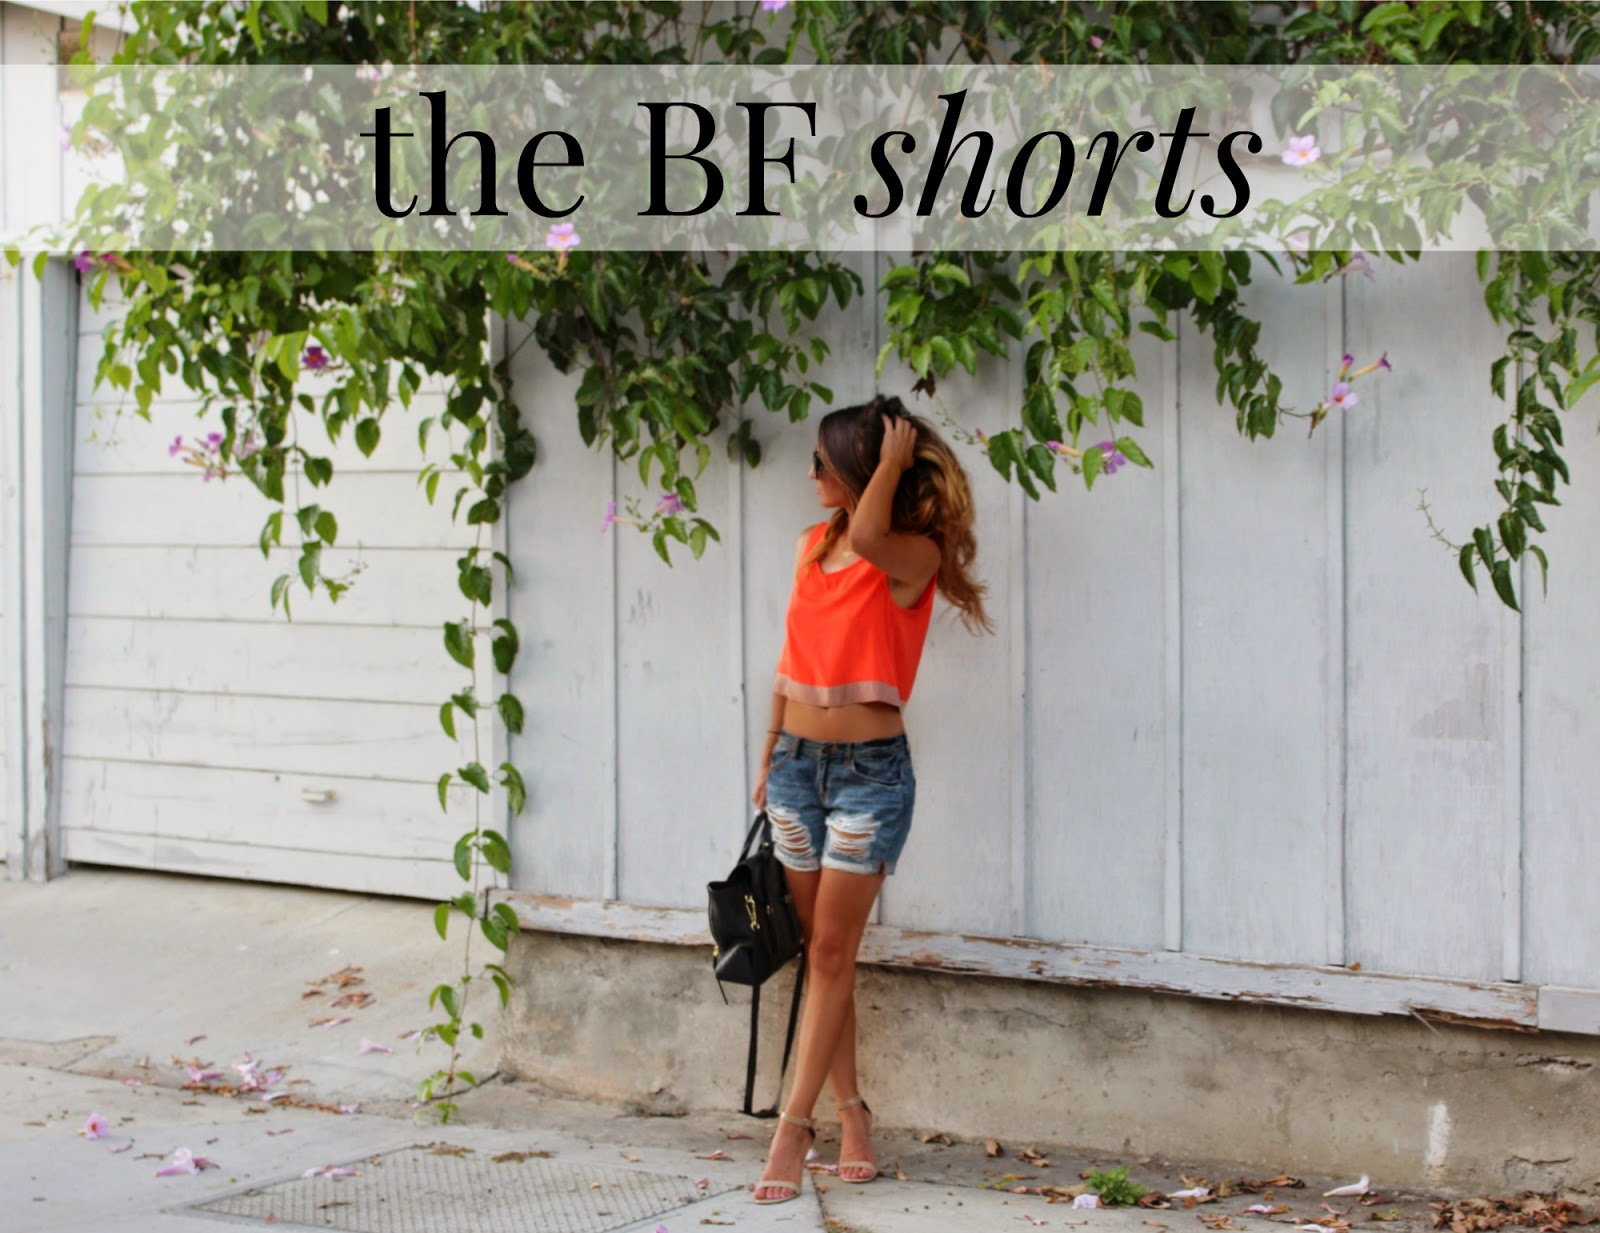 http://www.mepoopsie.com/2014/07/the-bf-shorts.html